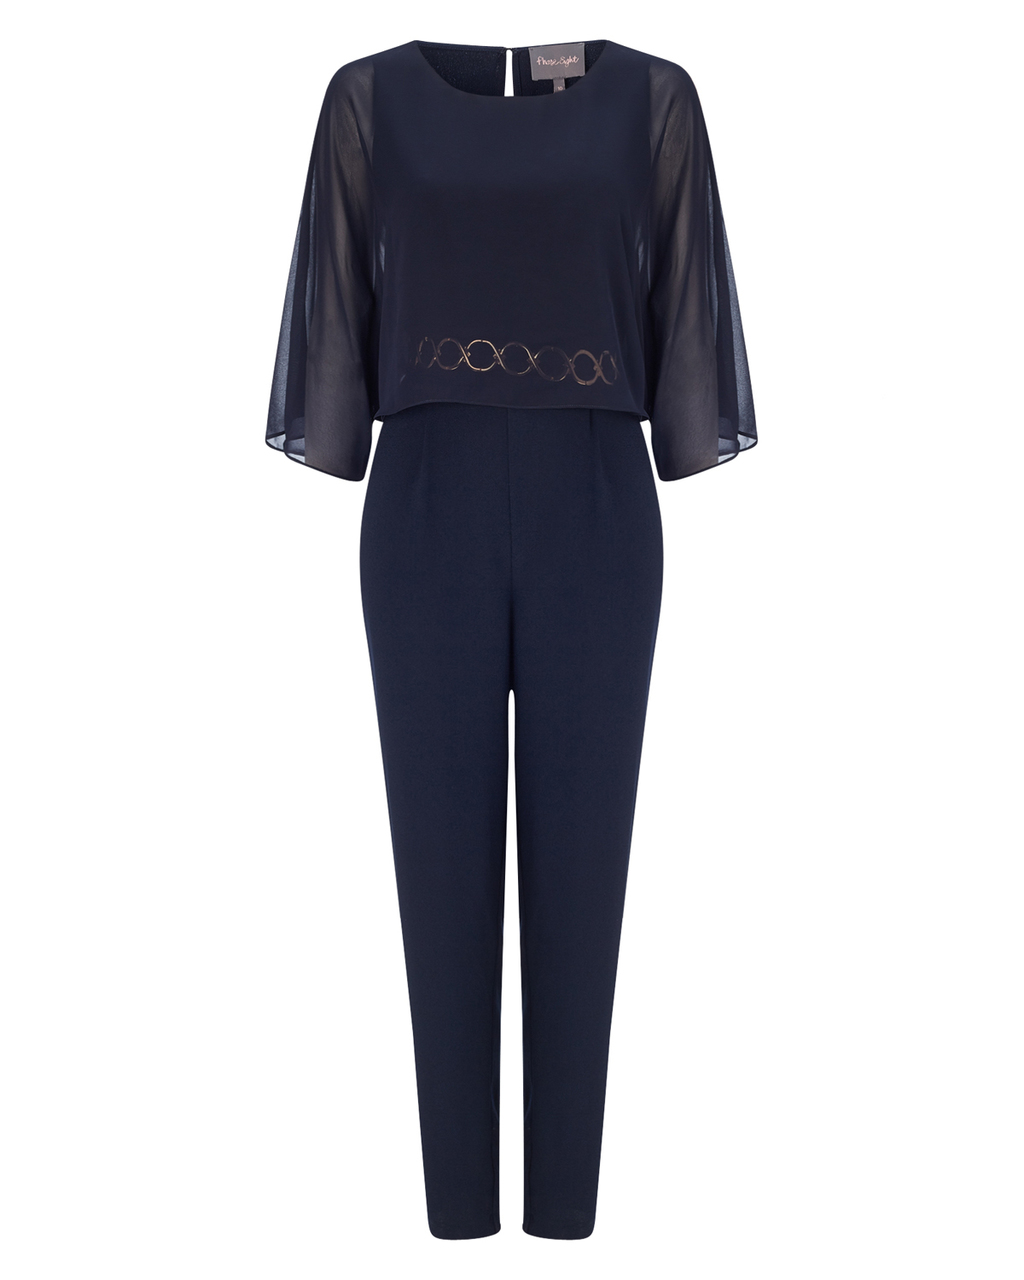 Janessa Jumpsuit - length: standard; neckline: round neck; fit: tailored/fitted; pattern: plain; bust detail: subtle bust detail; secondary colour: white; predominant colour: navy; occasions: evening, occasion; fibres: polyester/polyamide - mix; sleeve length: 3/4 length; sleeve style: standard; texture group: crepes; style: jumpsuit; pattern type: fabric; embellishment: sequins; shoulder detail: sheer at shoulder; season: a/w 2015; wardrobe: event; embellishment location: waist